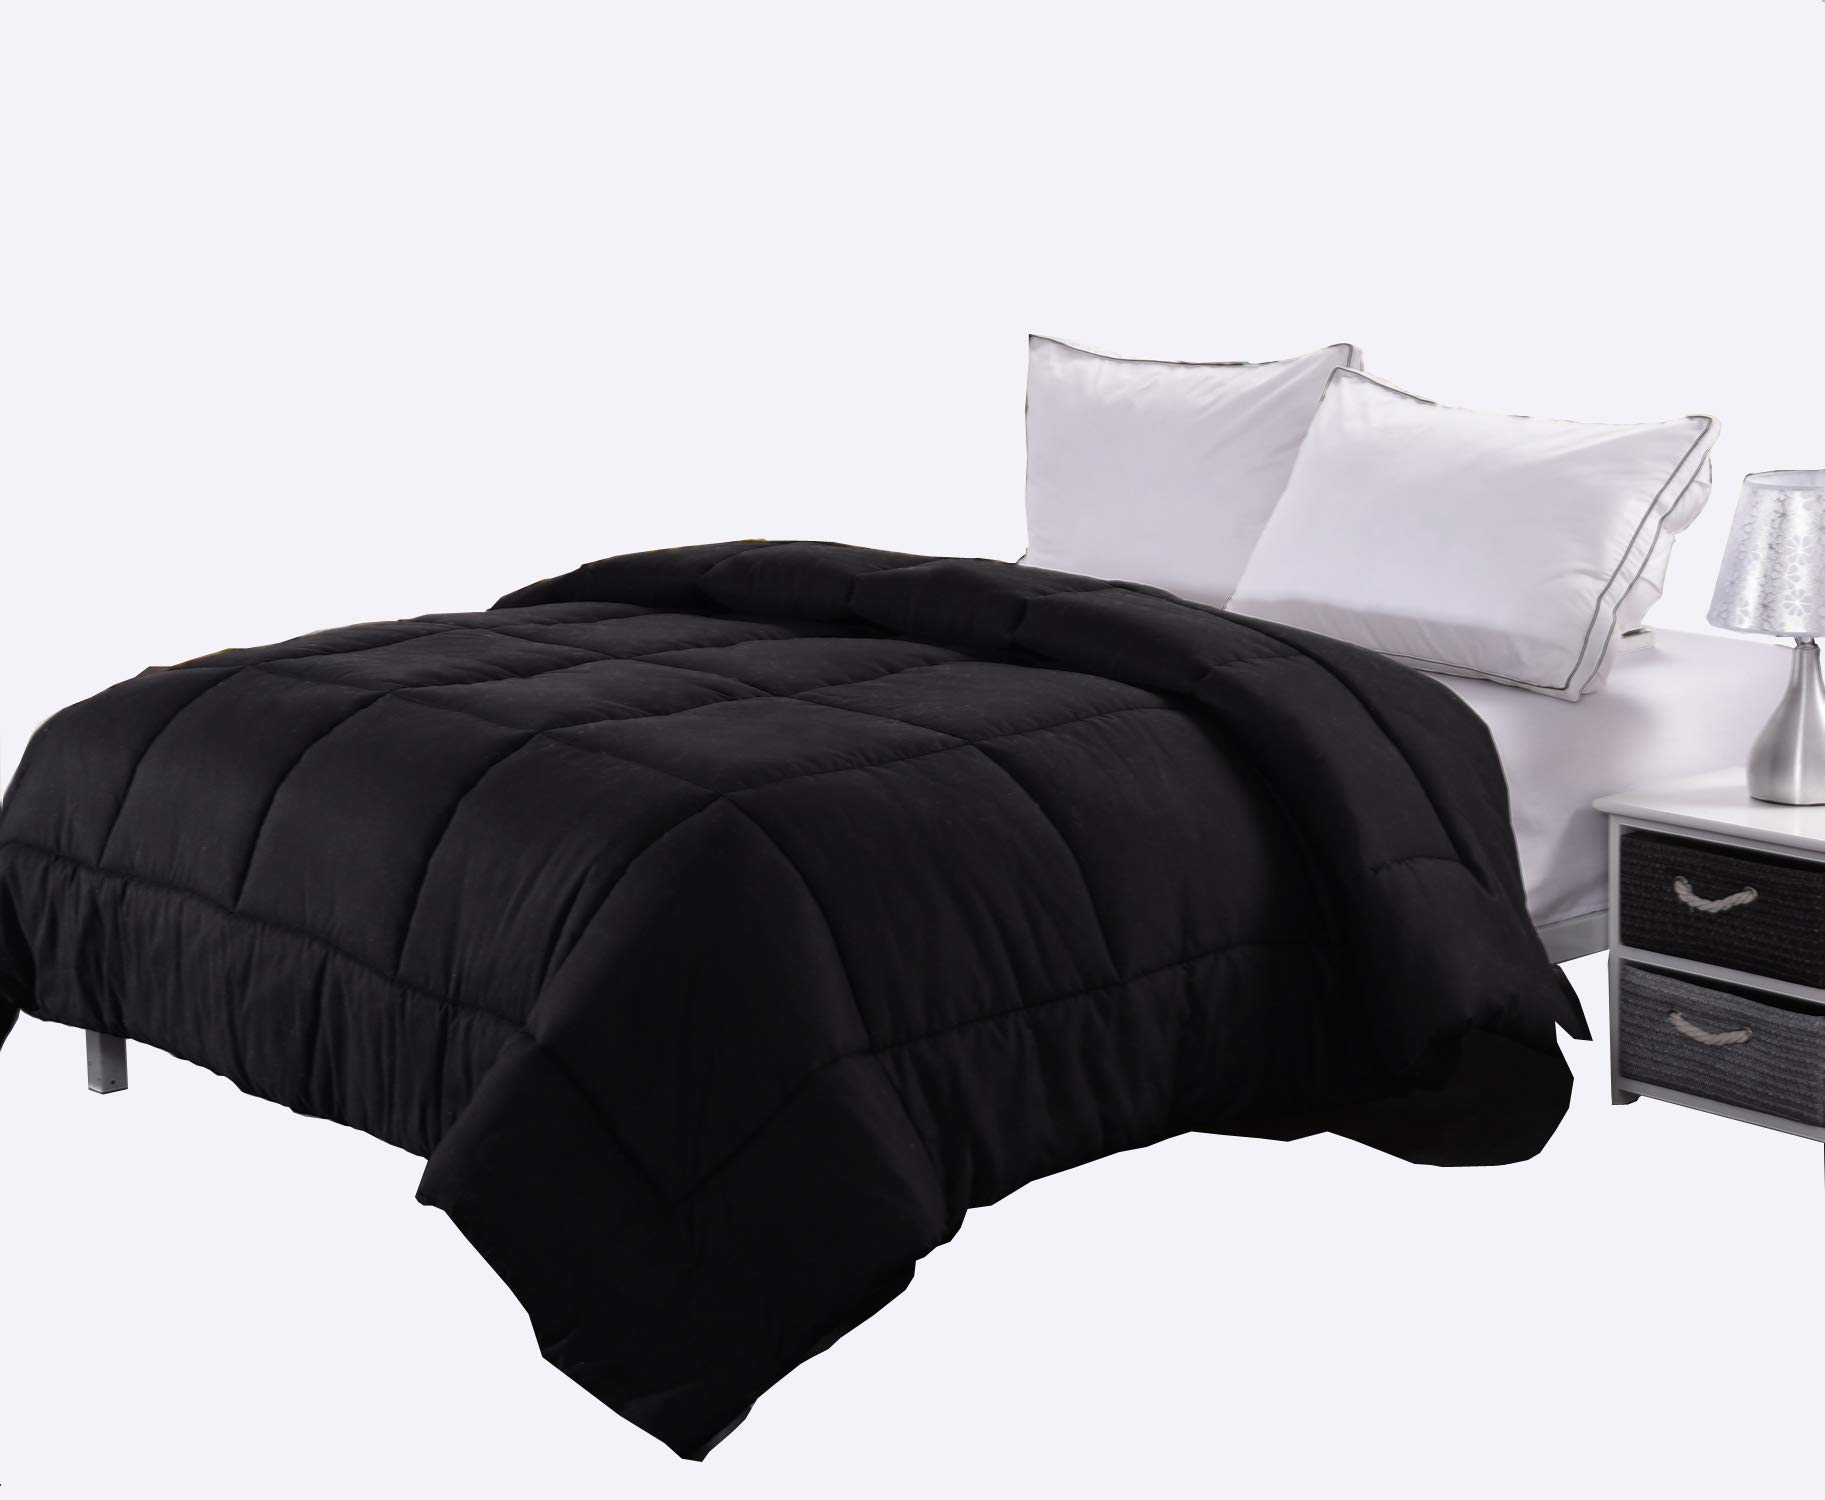 Ghooss All Season Black Bedding Down Alternative Comforter -Hotel Quality Luxury Quilt with Corner Tabs-Hypoallergenic-Super Microfiber Fill -Machine Washable-Queen by Ghooss (Image #1)